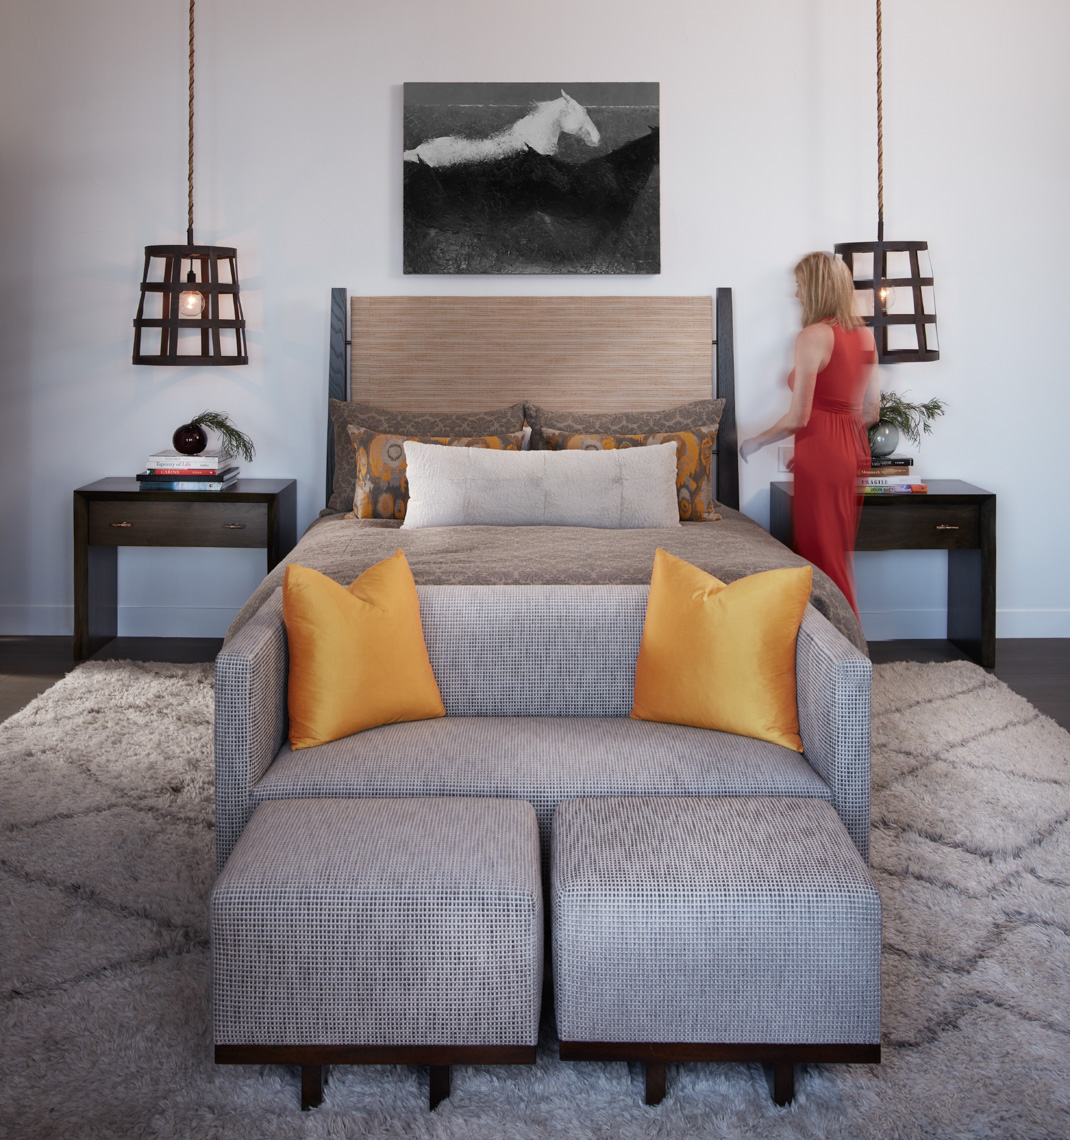 bedroom interior with grey couch with orange pillows and bed on grey patterned rug San Francisco interior photographer